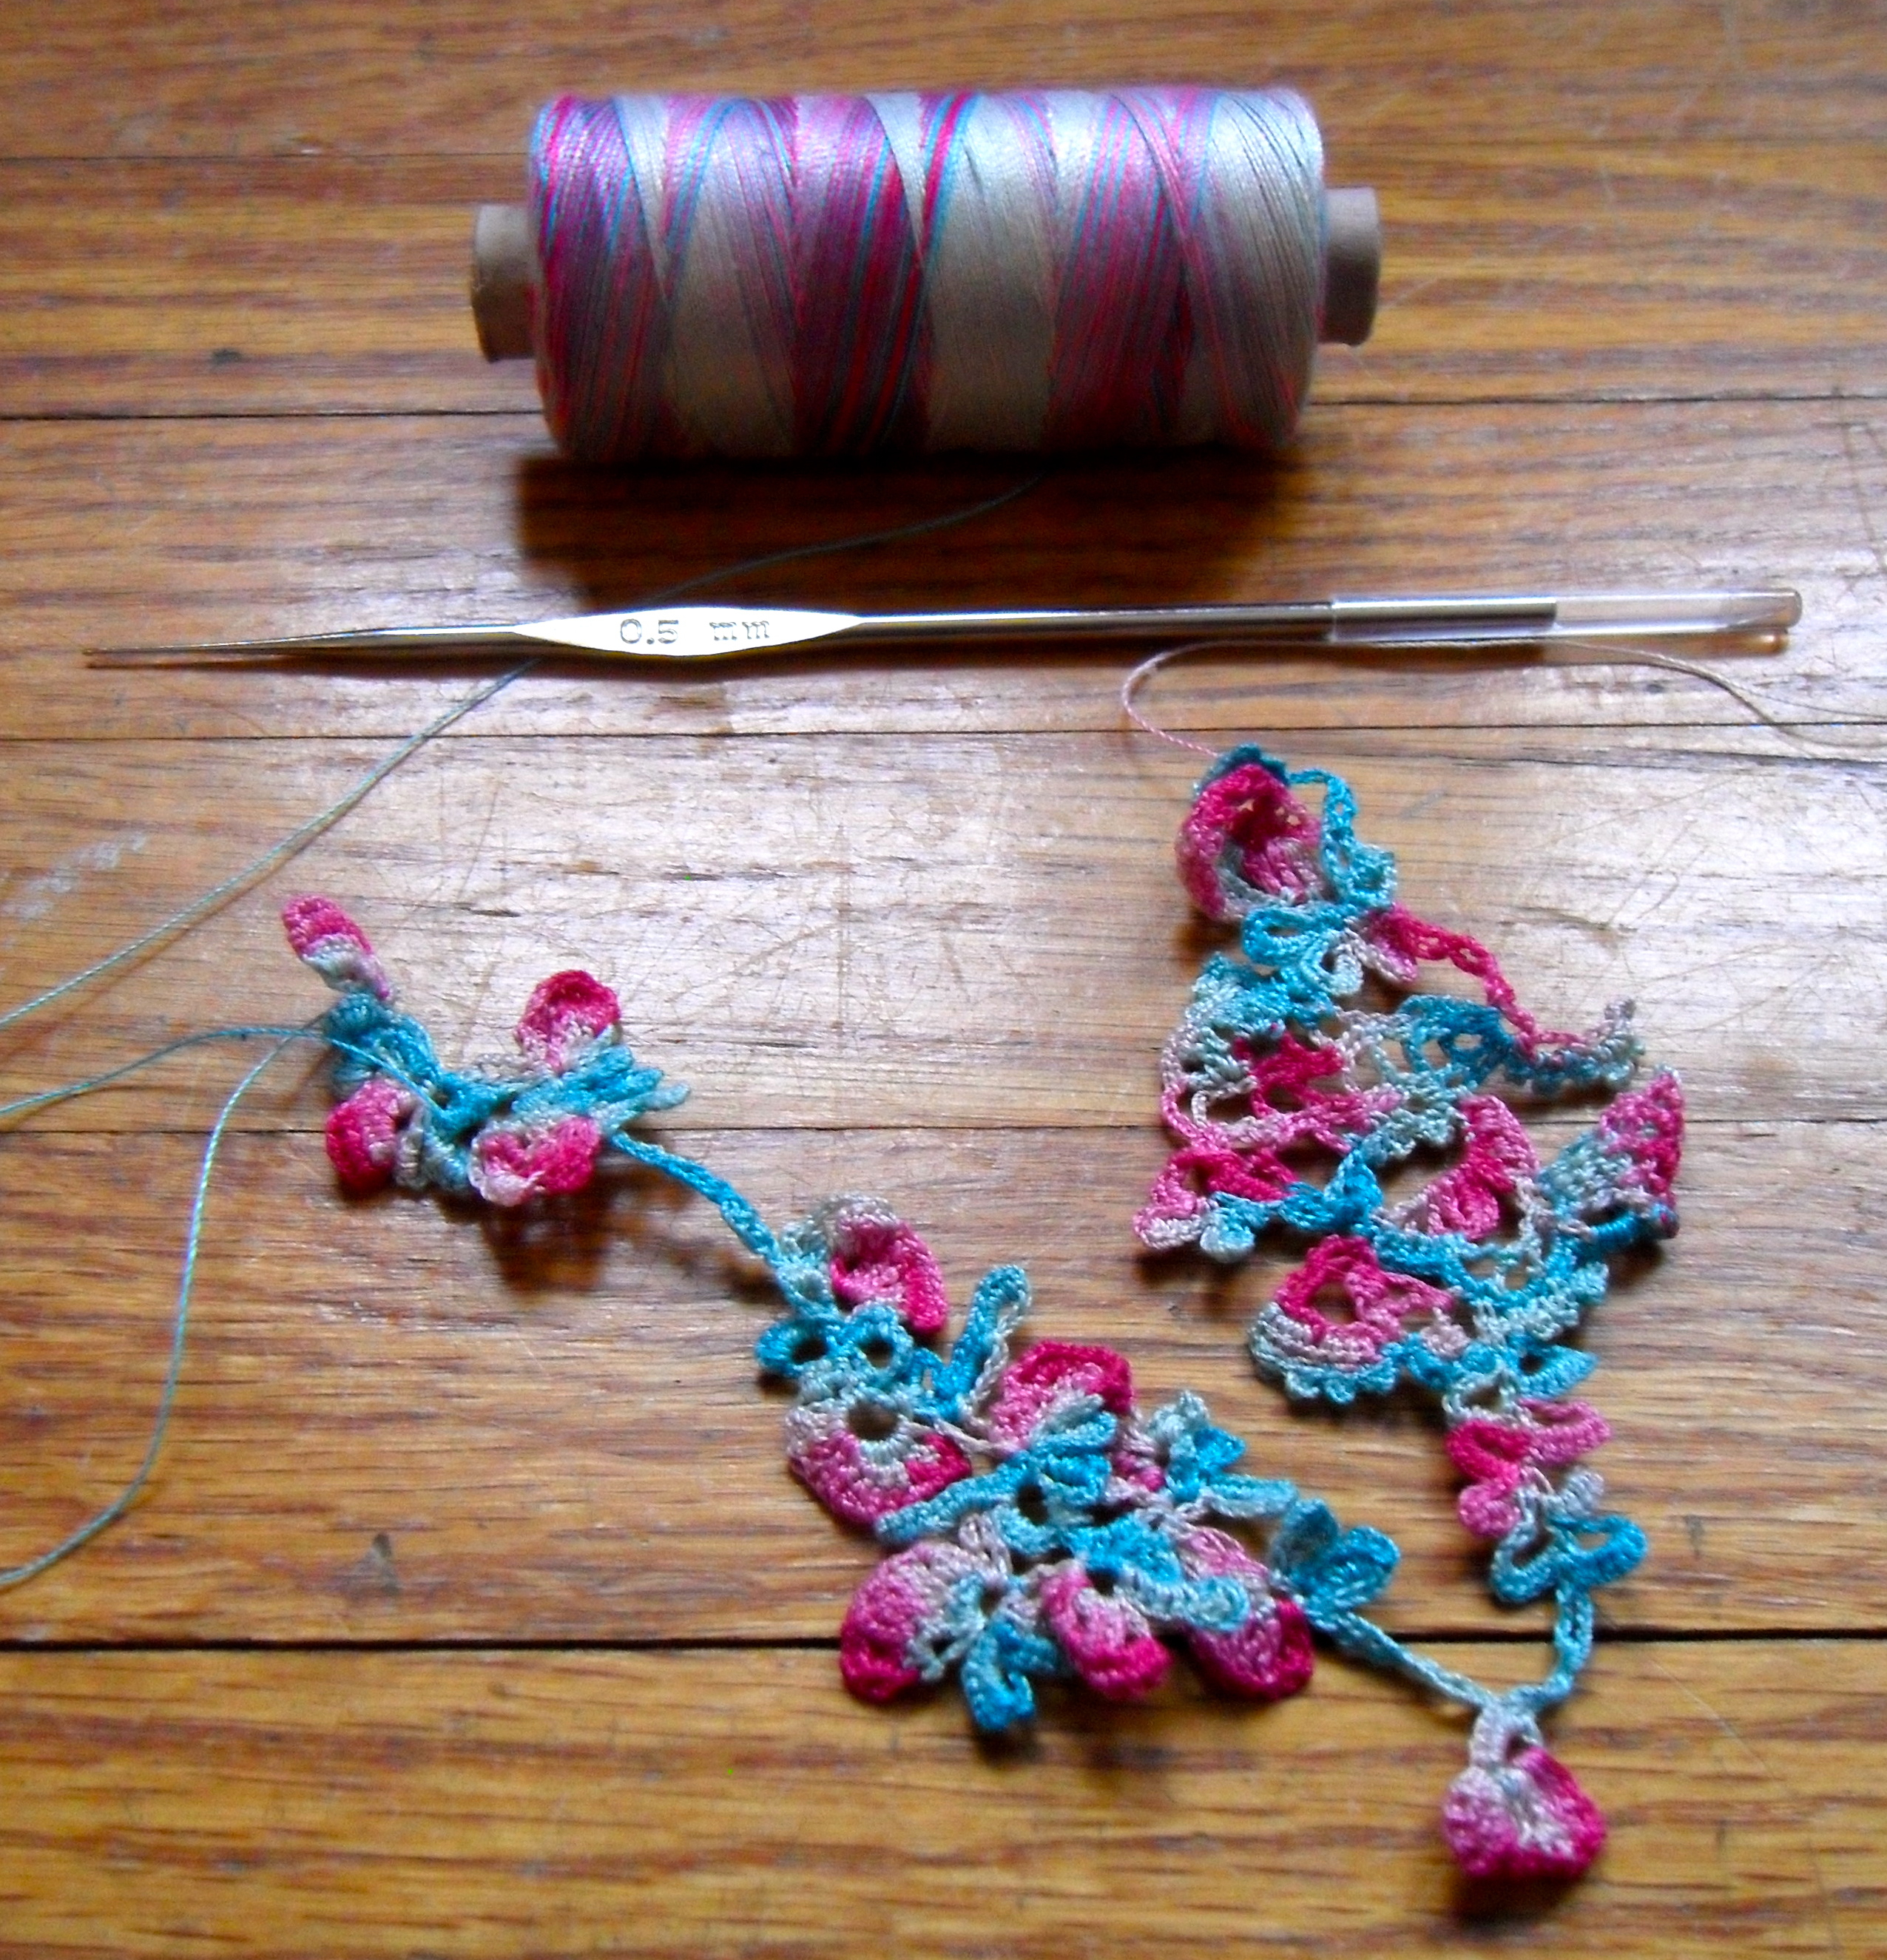 Freeform Lace Crochet with Quilting Thread | Fiber Art Reflections